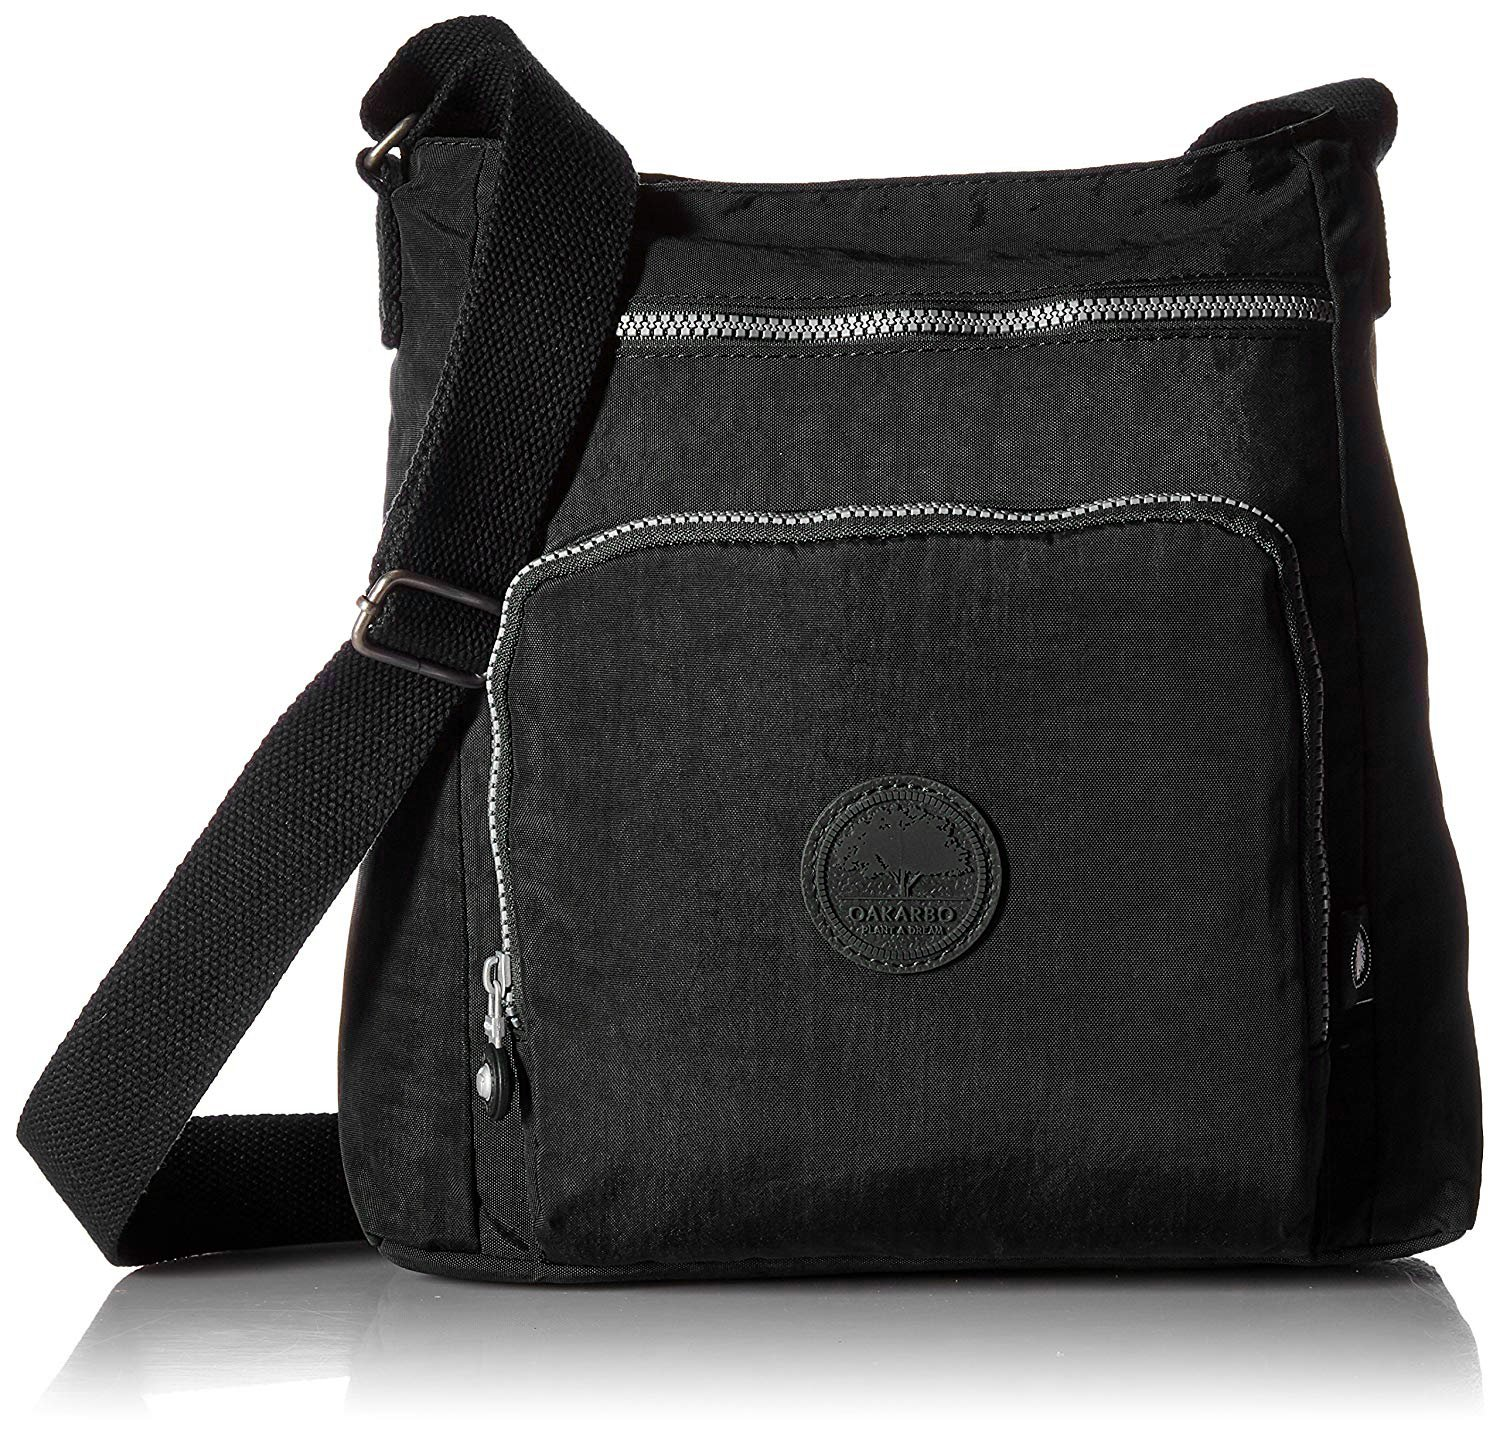 Oakarbo Nylon Crossbody Purse Multi-Pocket Travel Shoulder Bag (1301 Black)